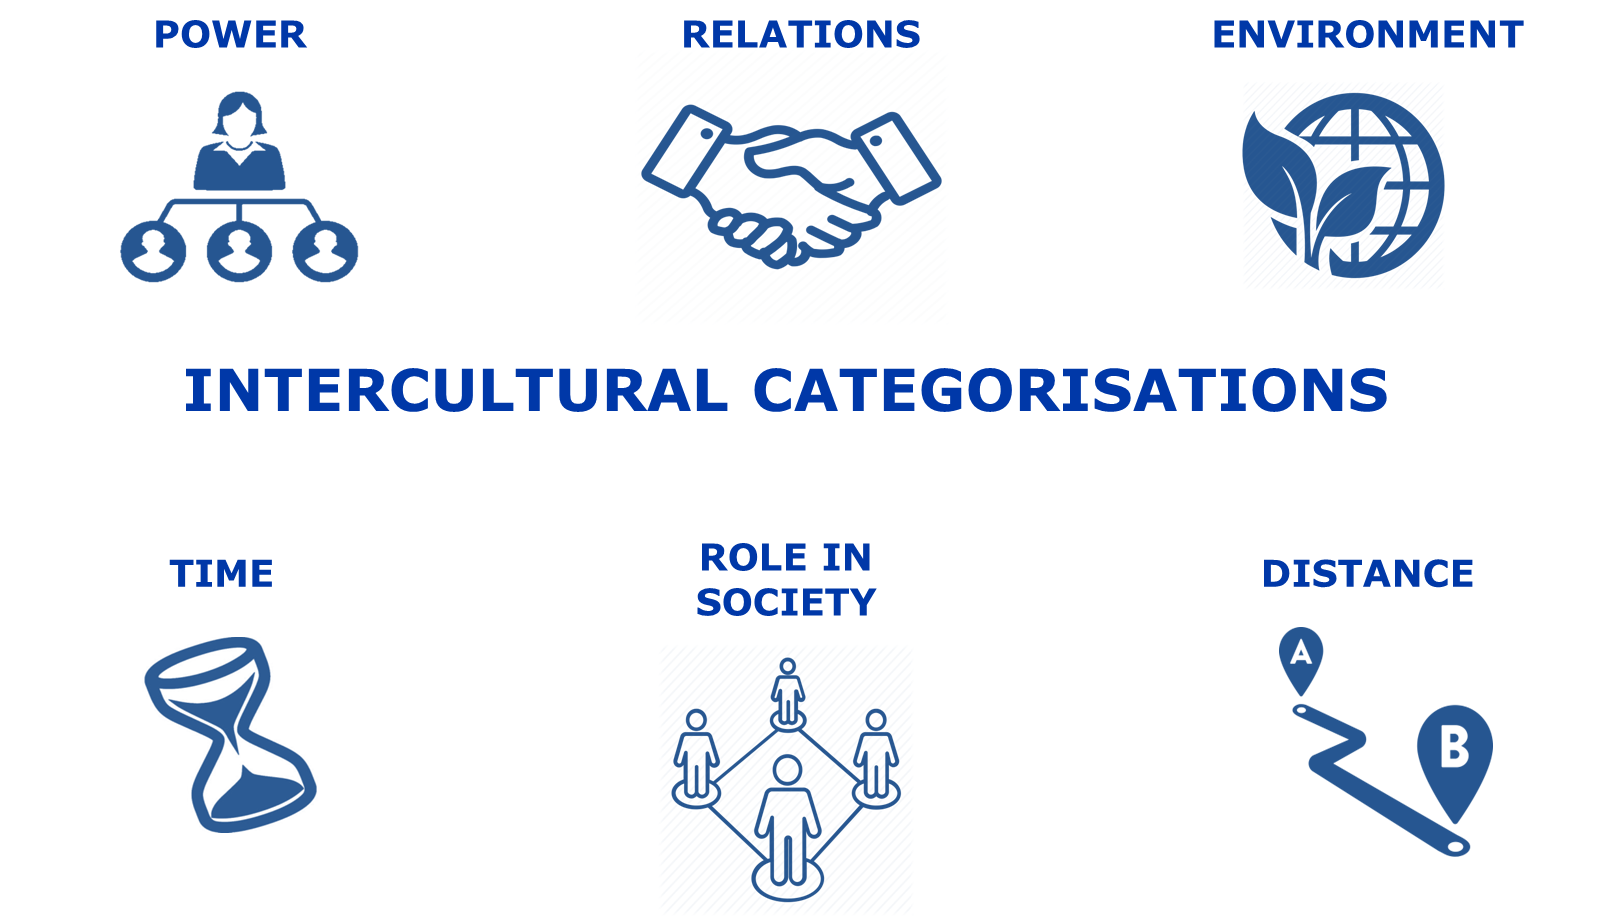 Intercultural categorisations